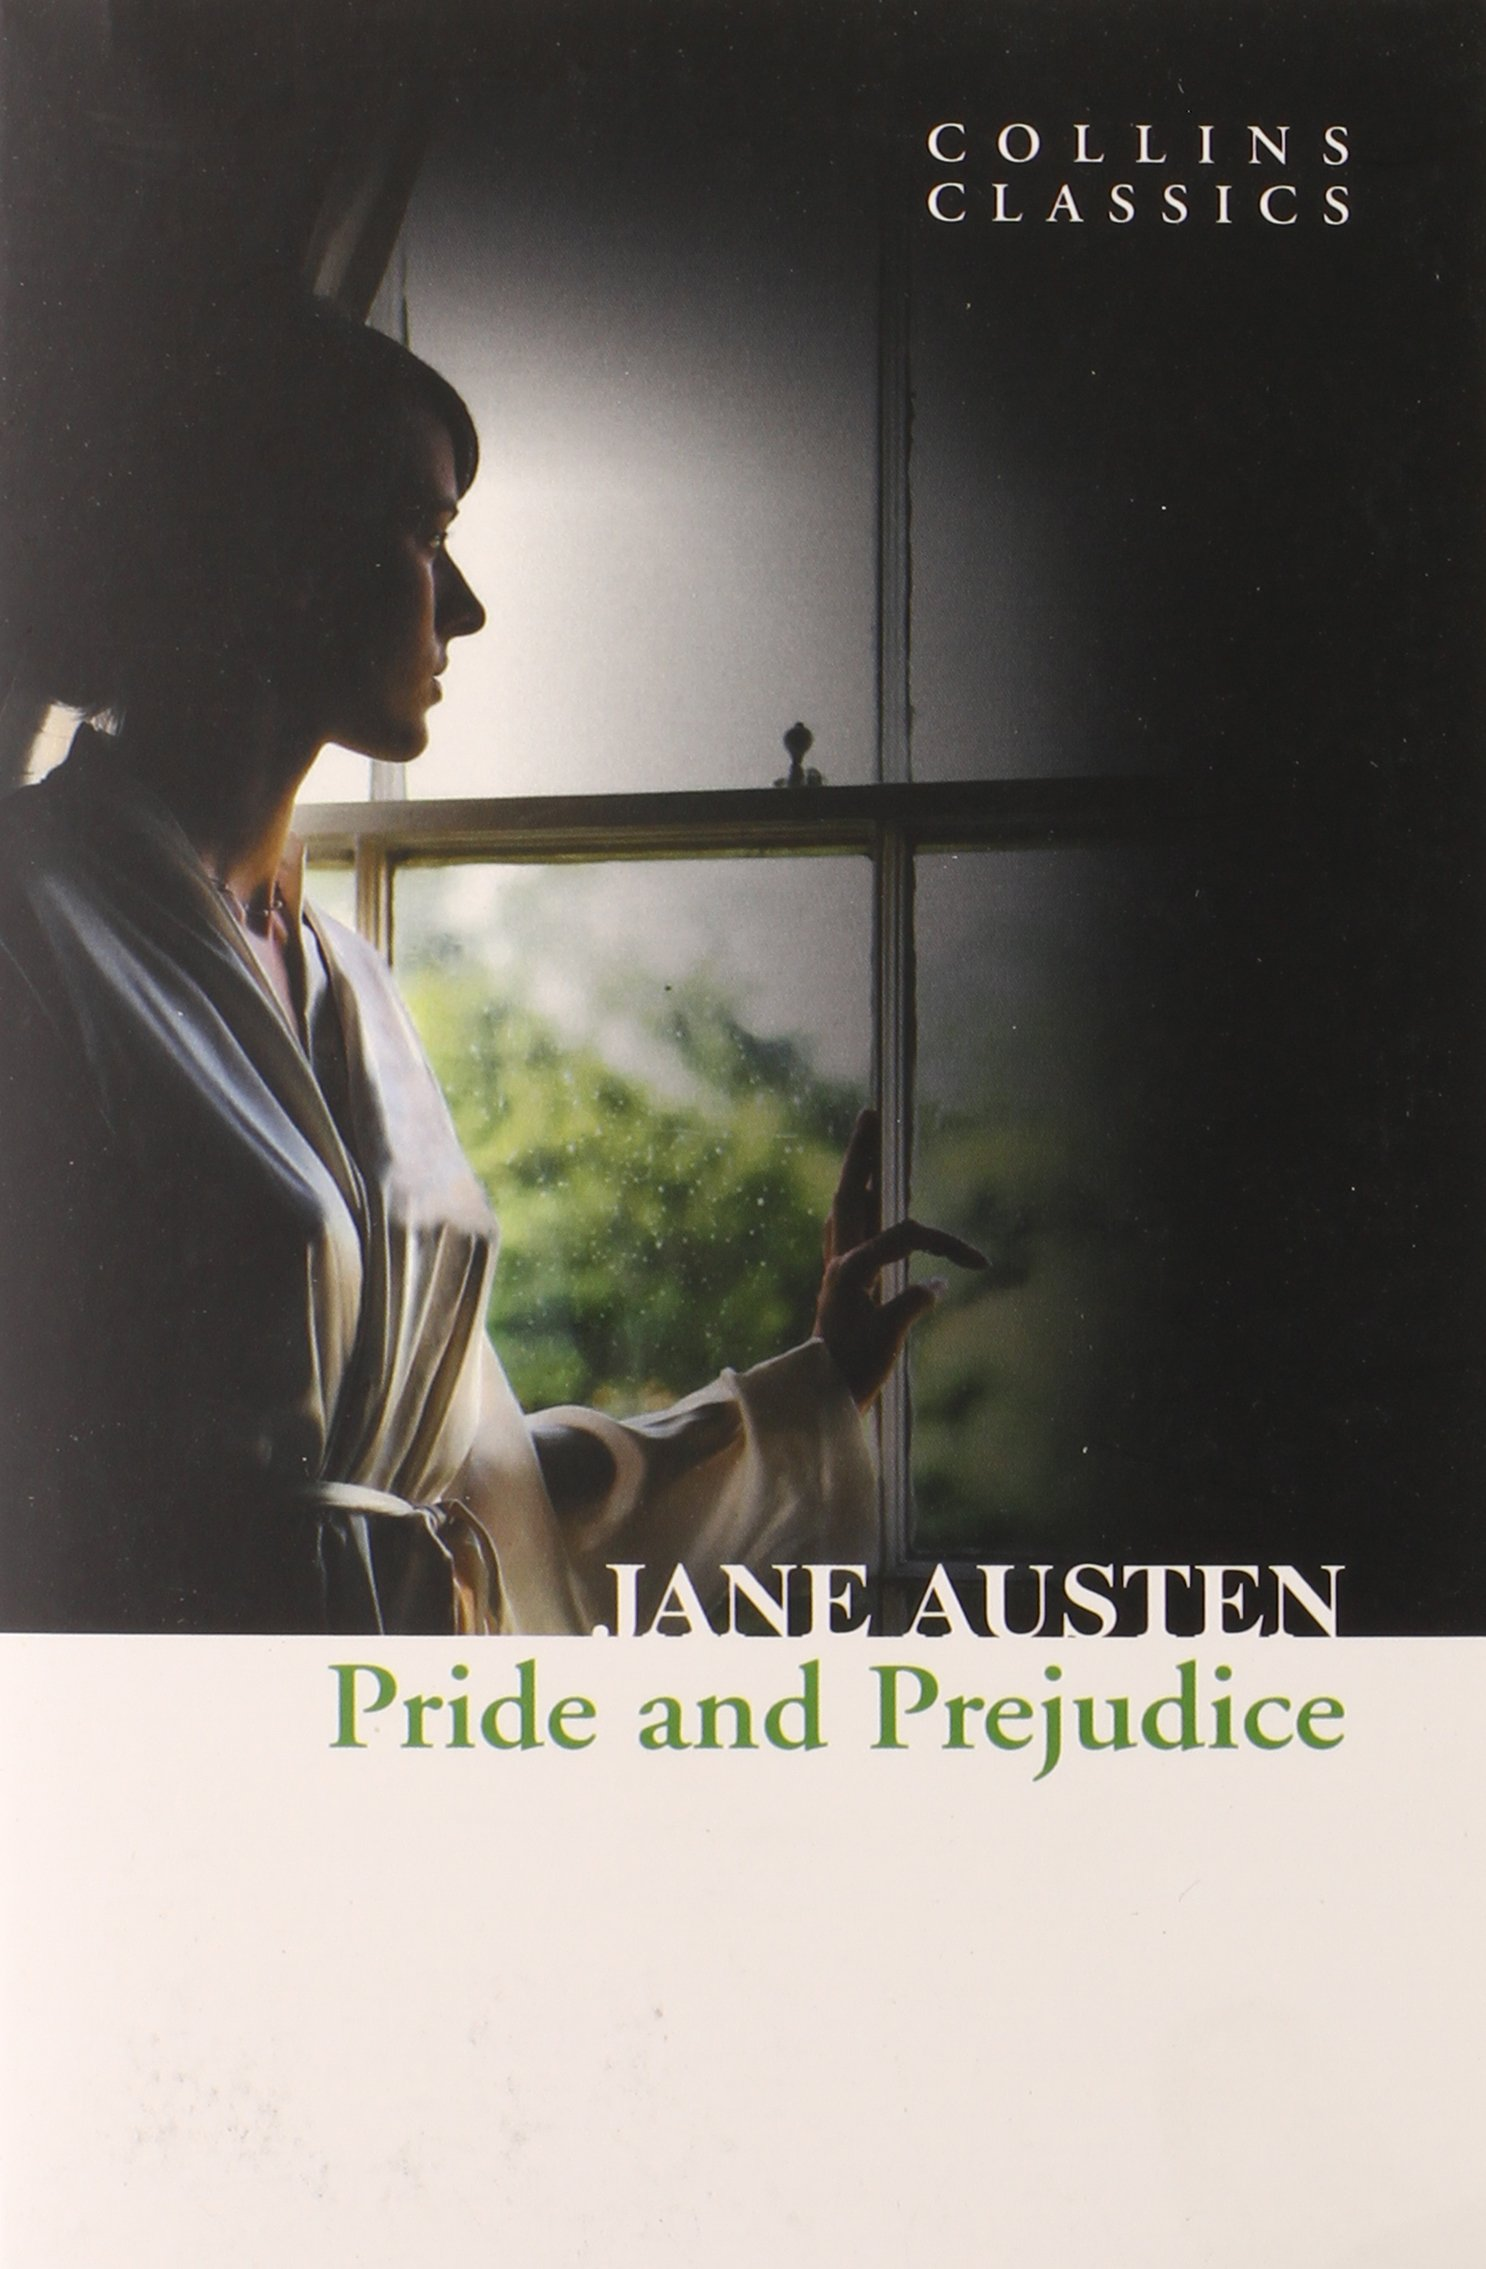 pride and prejudice collins classics jane austen  pride and prejudice collins classics jane austen 9780007350773 literature amazon